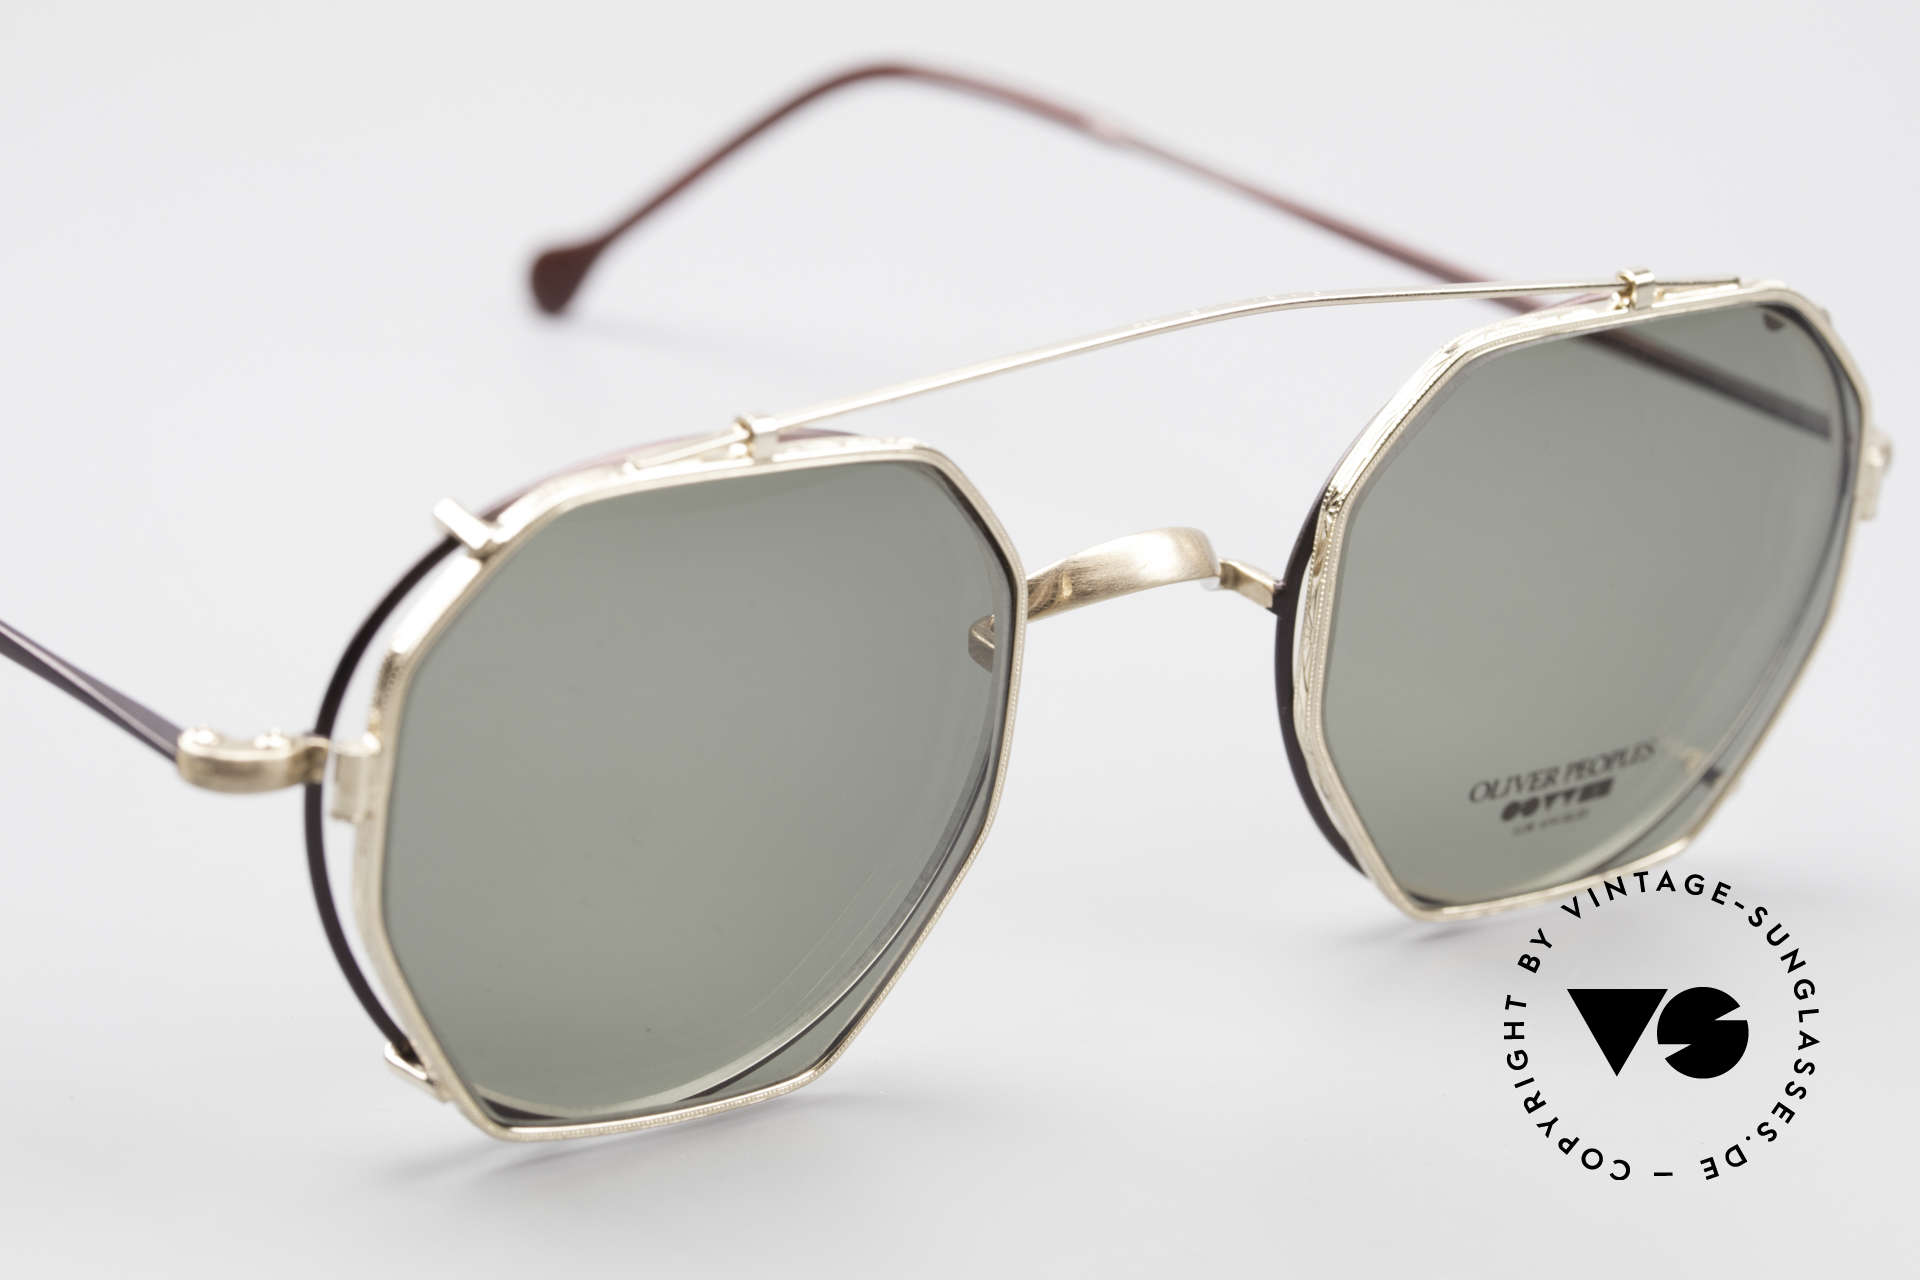 Oliver Peoples OP80BG 90's Vintage Frame Clip On, well, the combination fits & looks cool; one of a kind!, Made for Men and Women